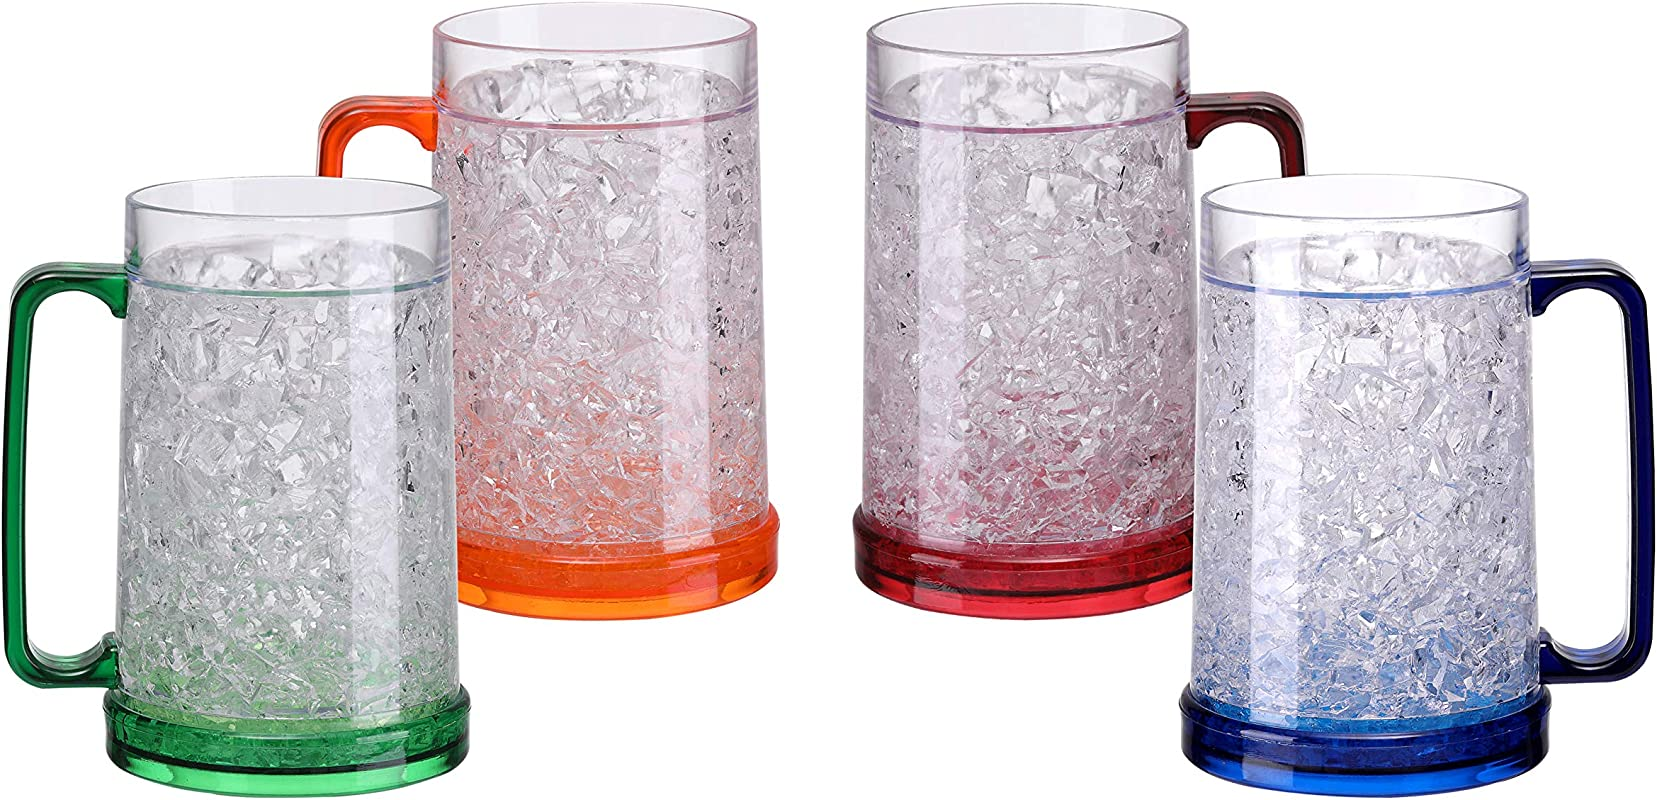 BC Inter Double Wall Gel Frosty Freezer Ice Mugs Clear 16oz Set Of 4 Blue Red Orange And Green